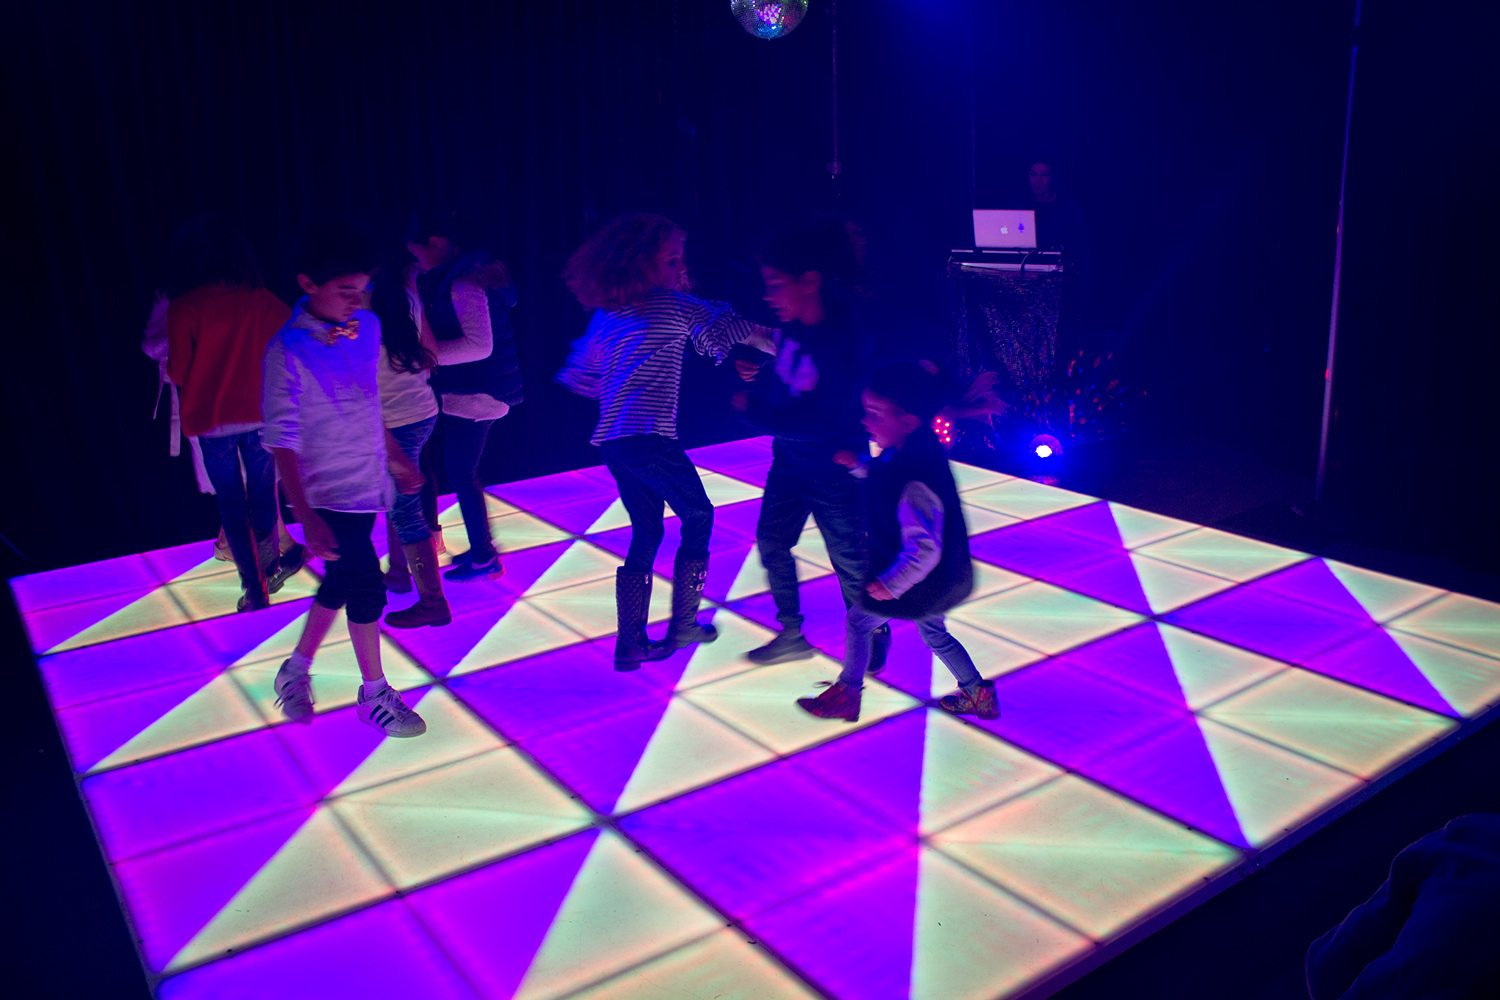 An illuminated LED dance floor will create an awesome party atmosphere where your guests won't want to stop dancing.